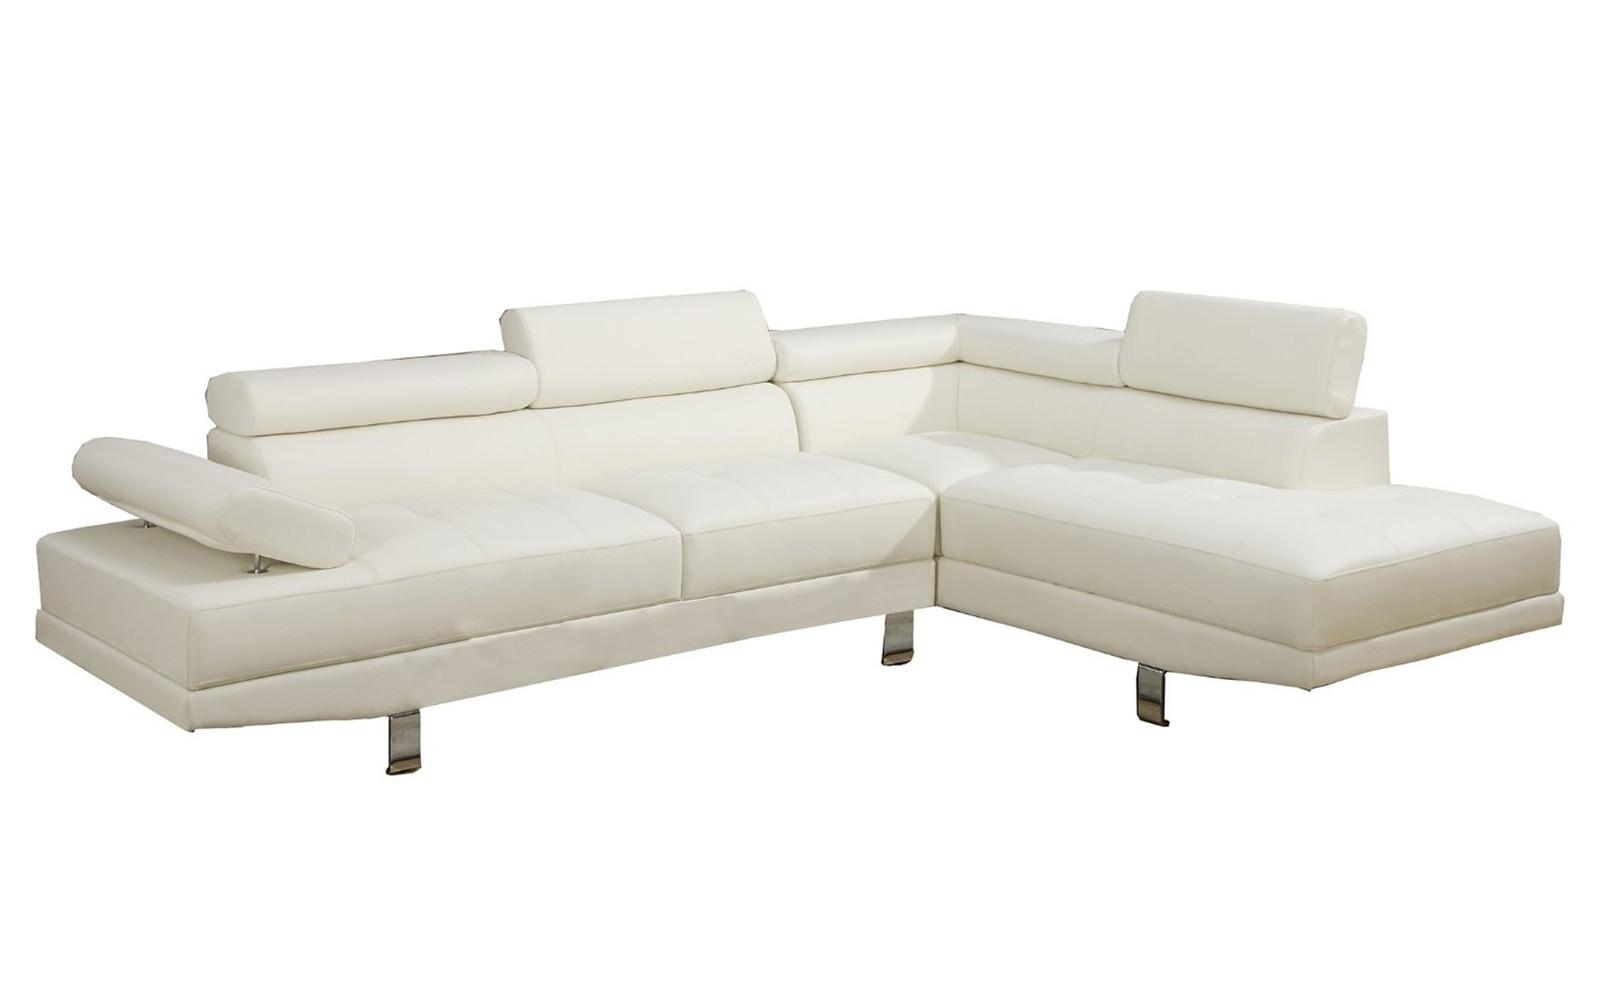 2 Piece Modern Bonded Leather Right Facing Chaise Sectional Sofa Throughout Sectional Sofa With 2 Chaises (Image 2 of 20)